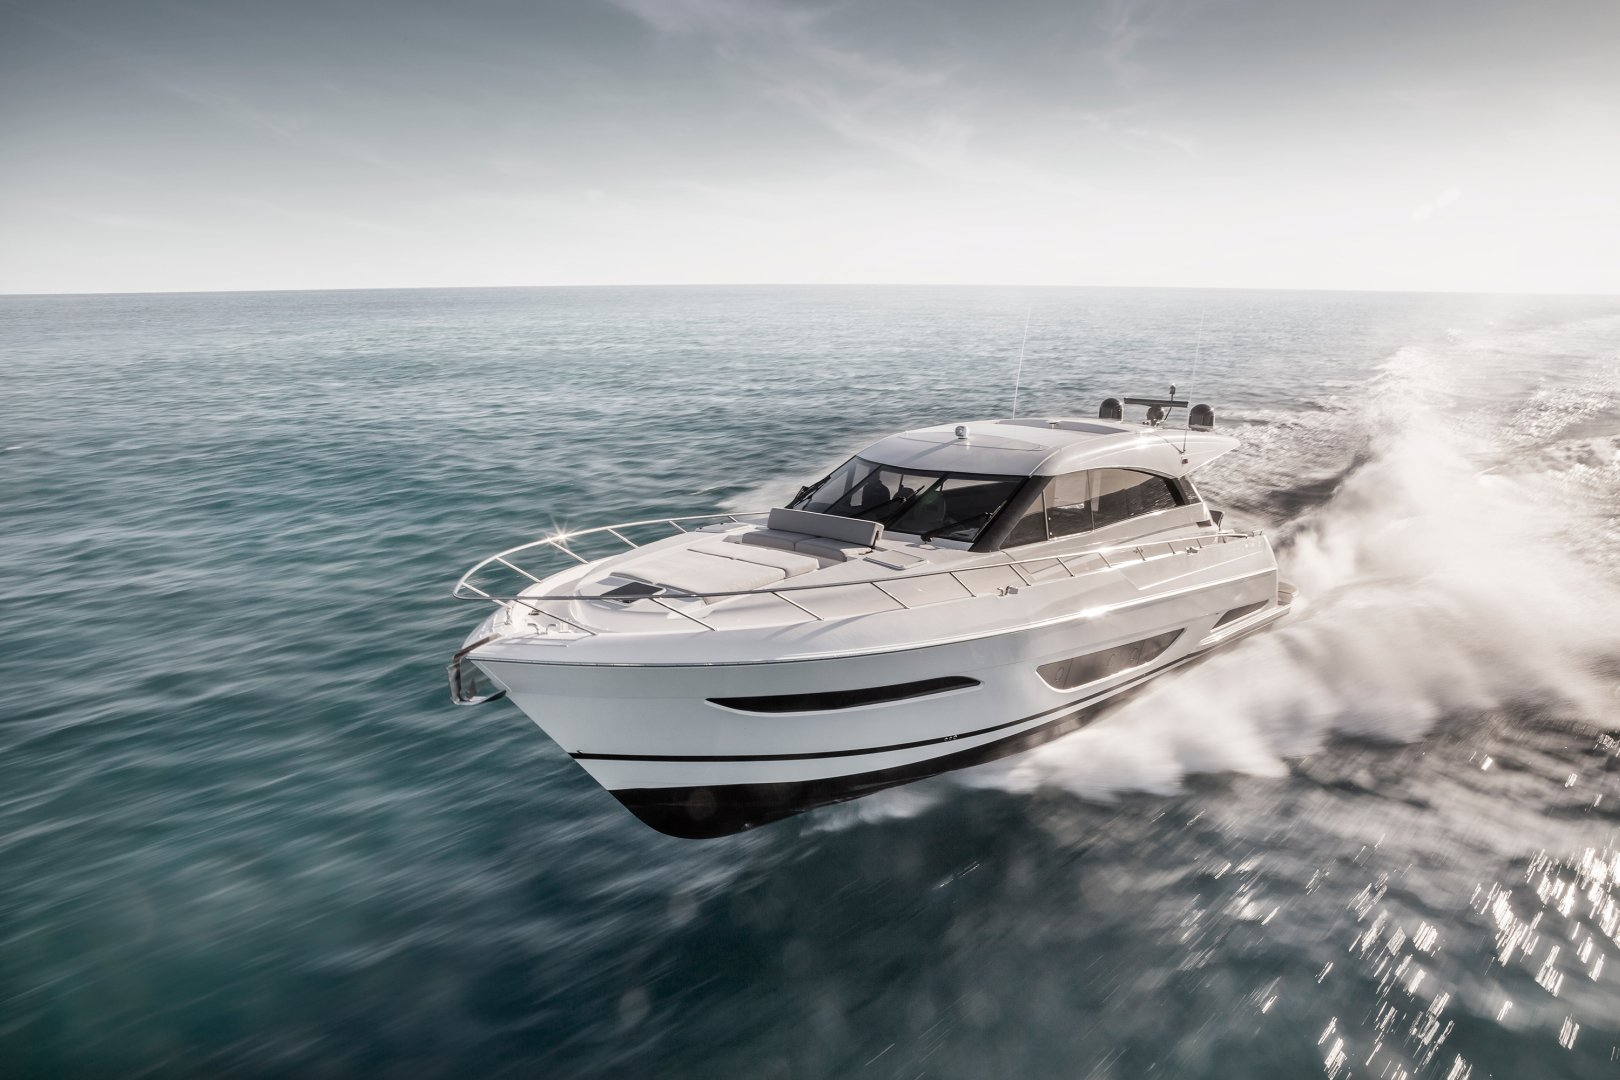 360 VR Virtual Tours of the Maritimo X60 – VRCLOUD